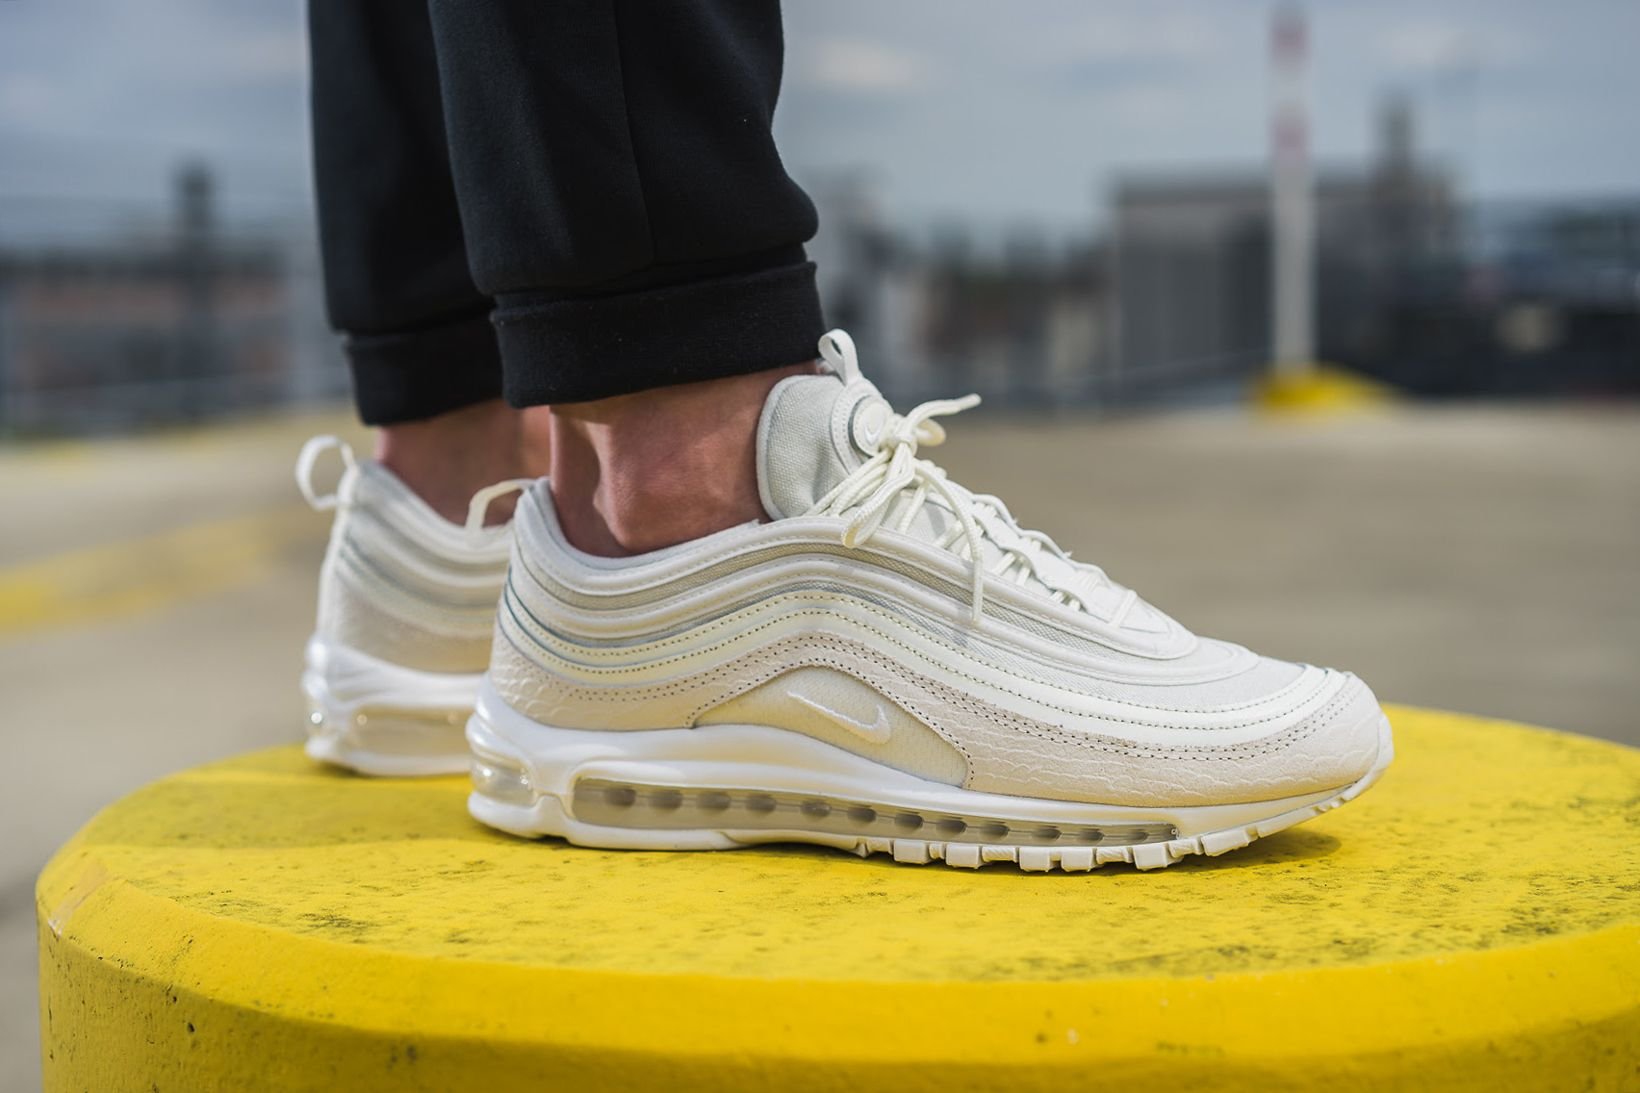 An On Feet Look At The Nike Air Max 97 White Snakeskin Nike